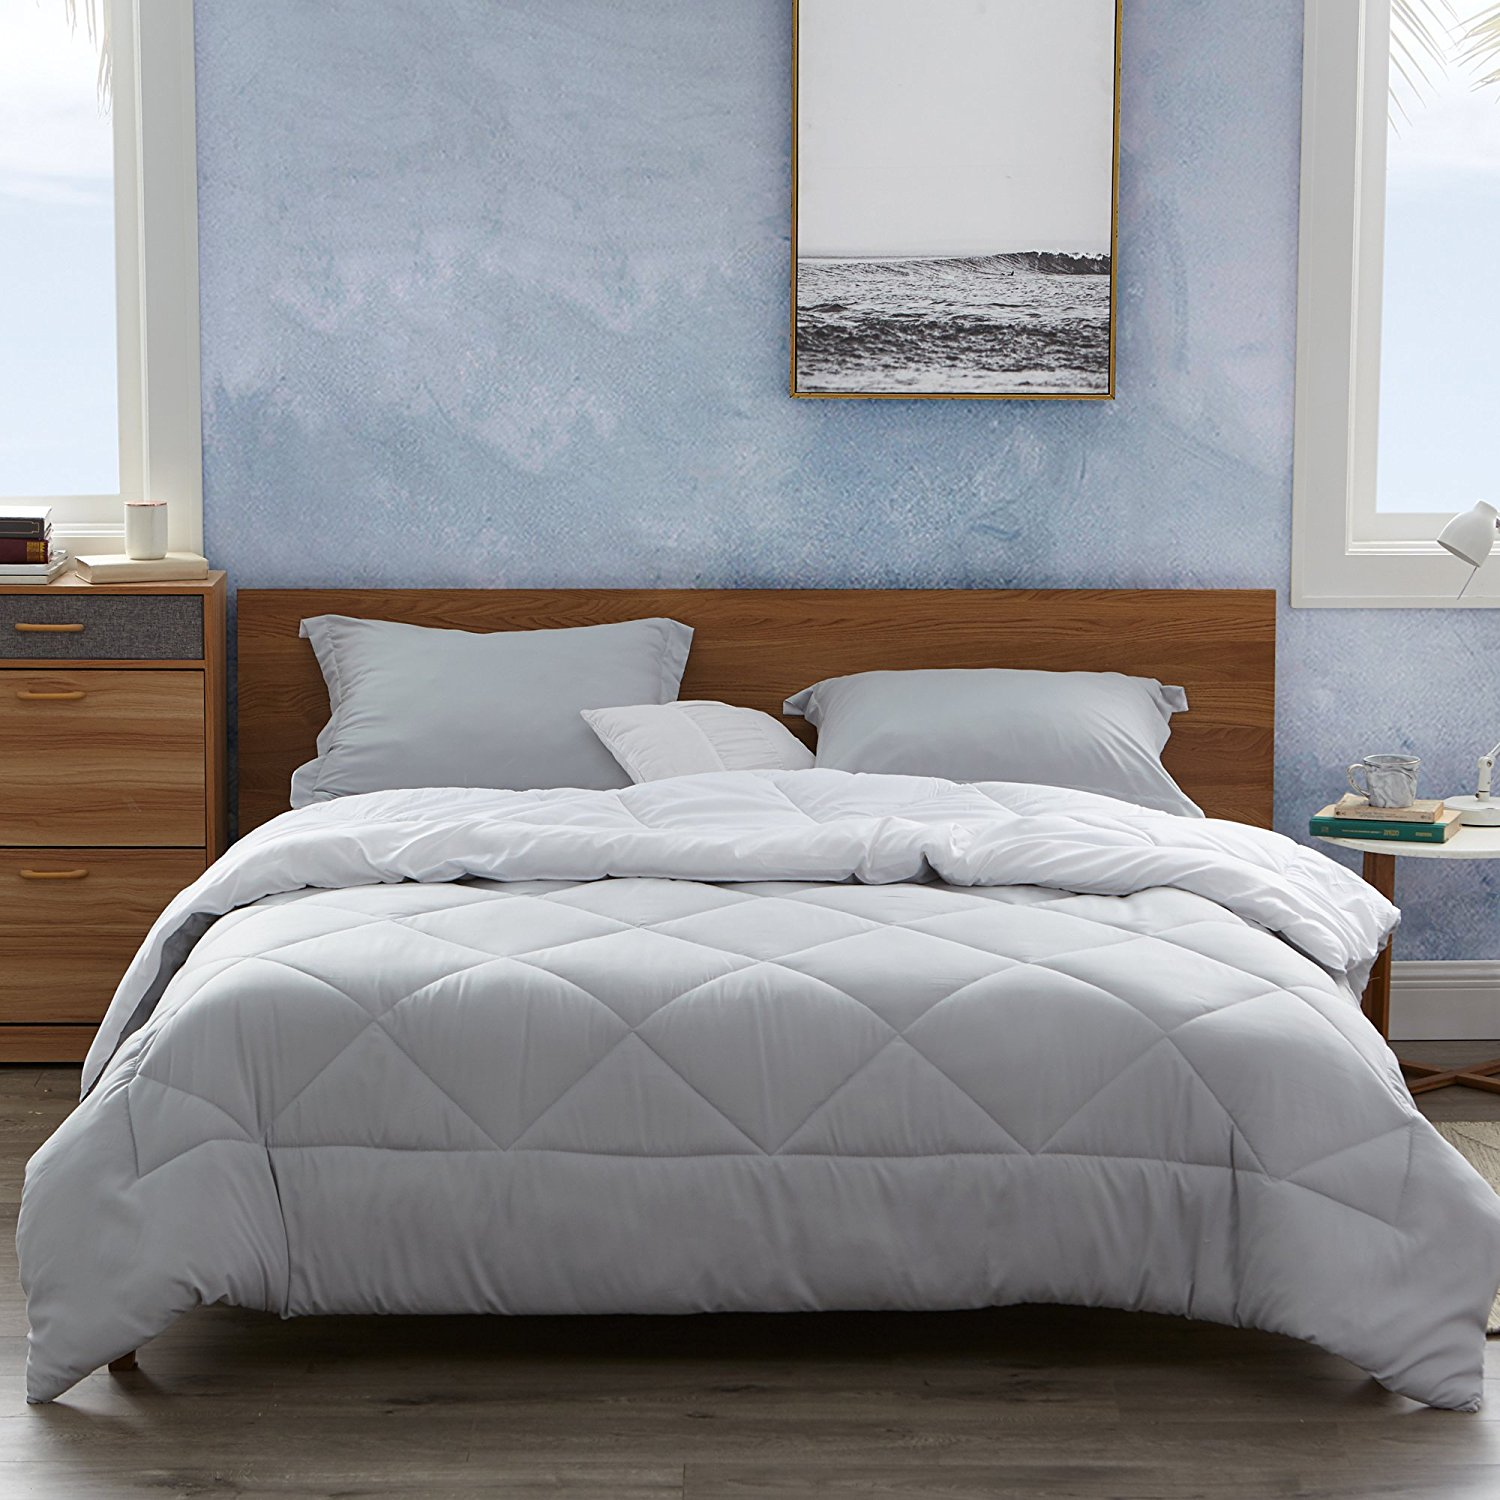 Byourbed Glacier Gray/White Twin Comforter - Oversized Twin XL Bedding